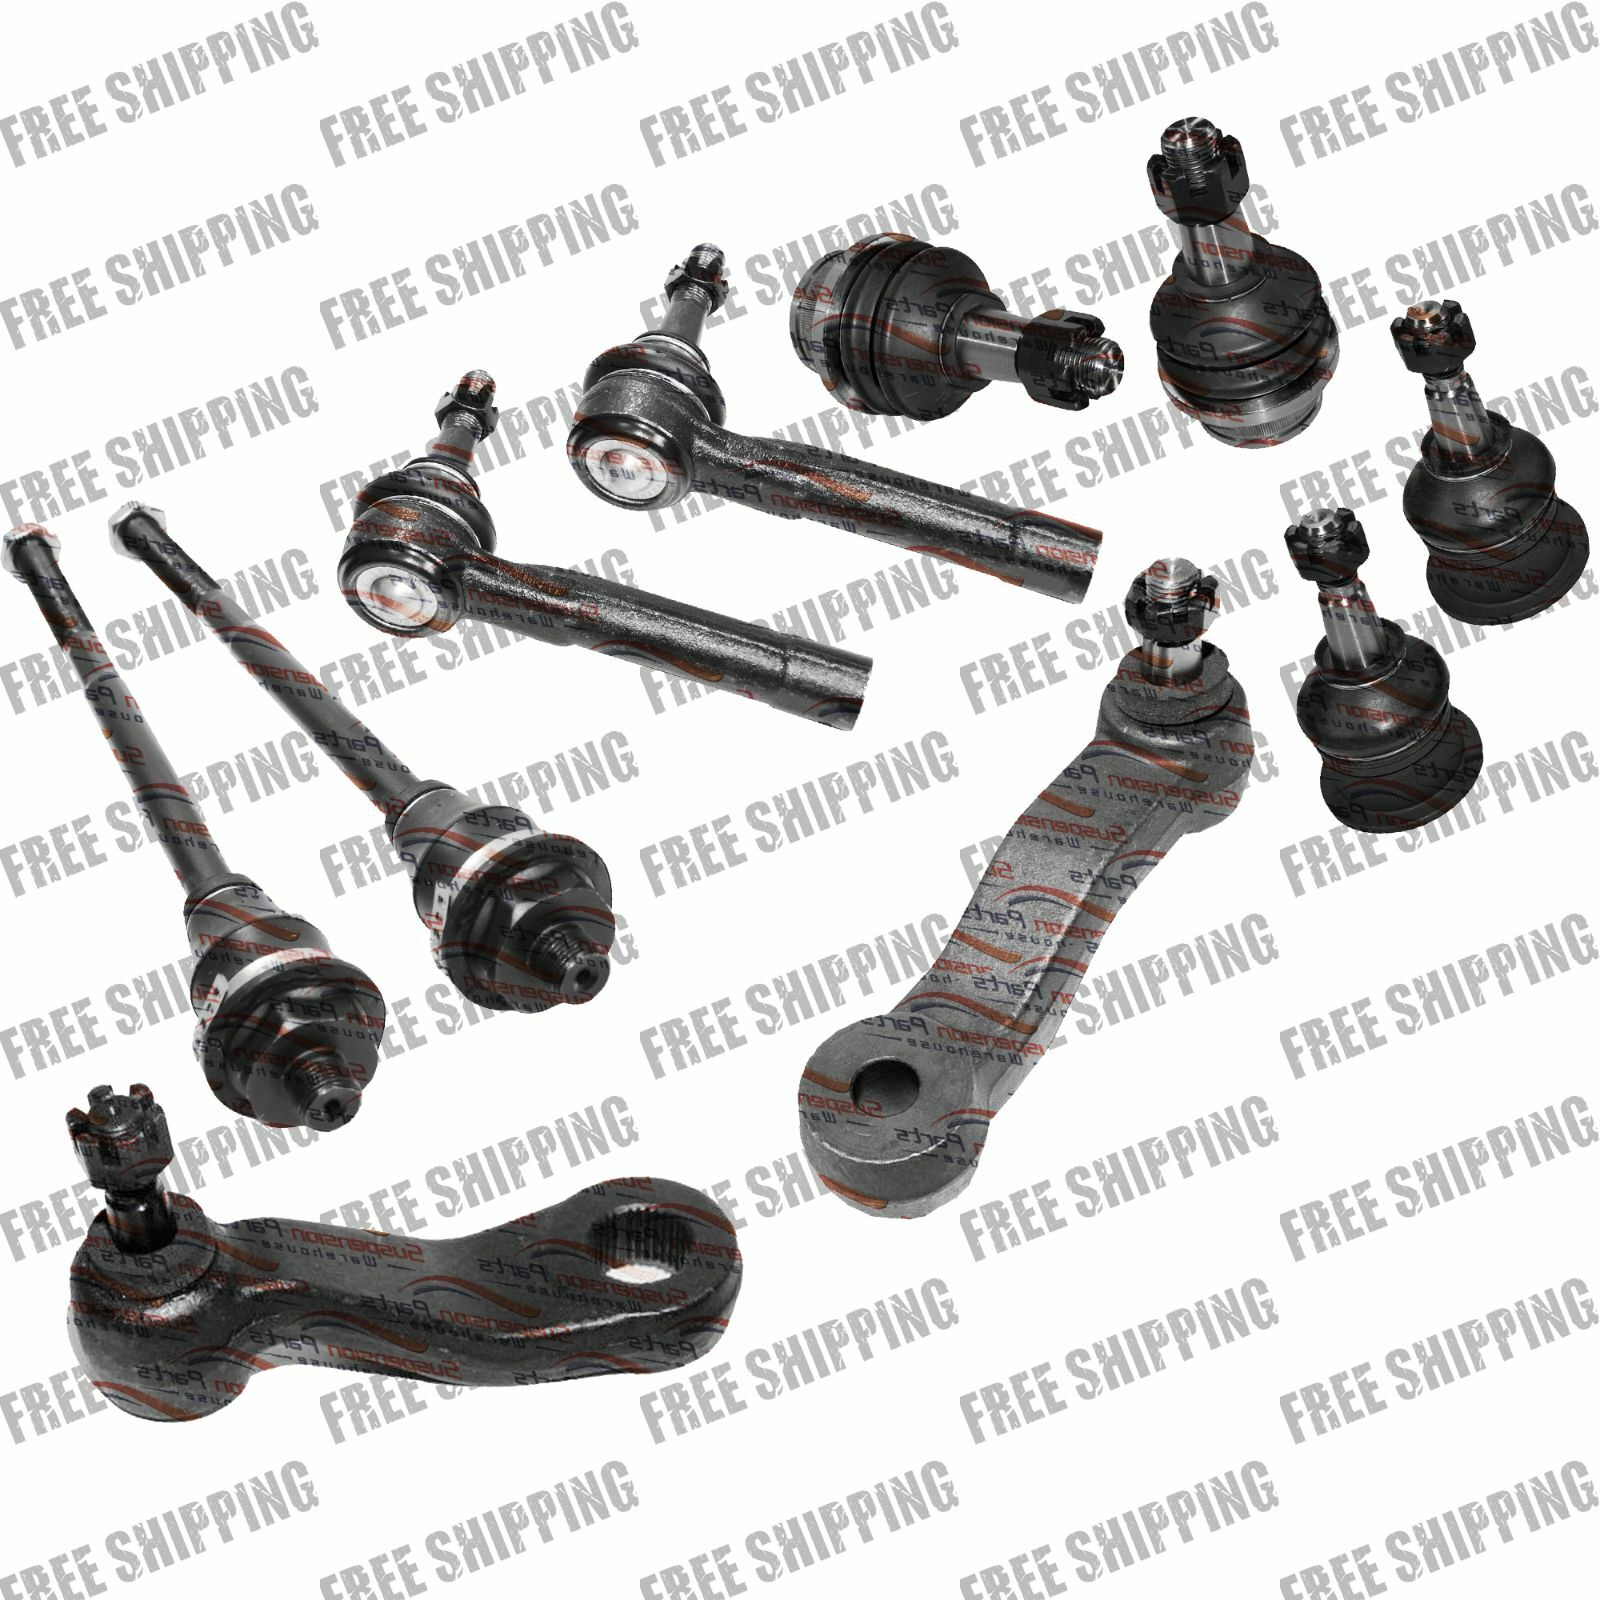 Chevrolet Silverado Hd Gmc Sierra Hd Front Kit Steering Chassis Parts